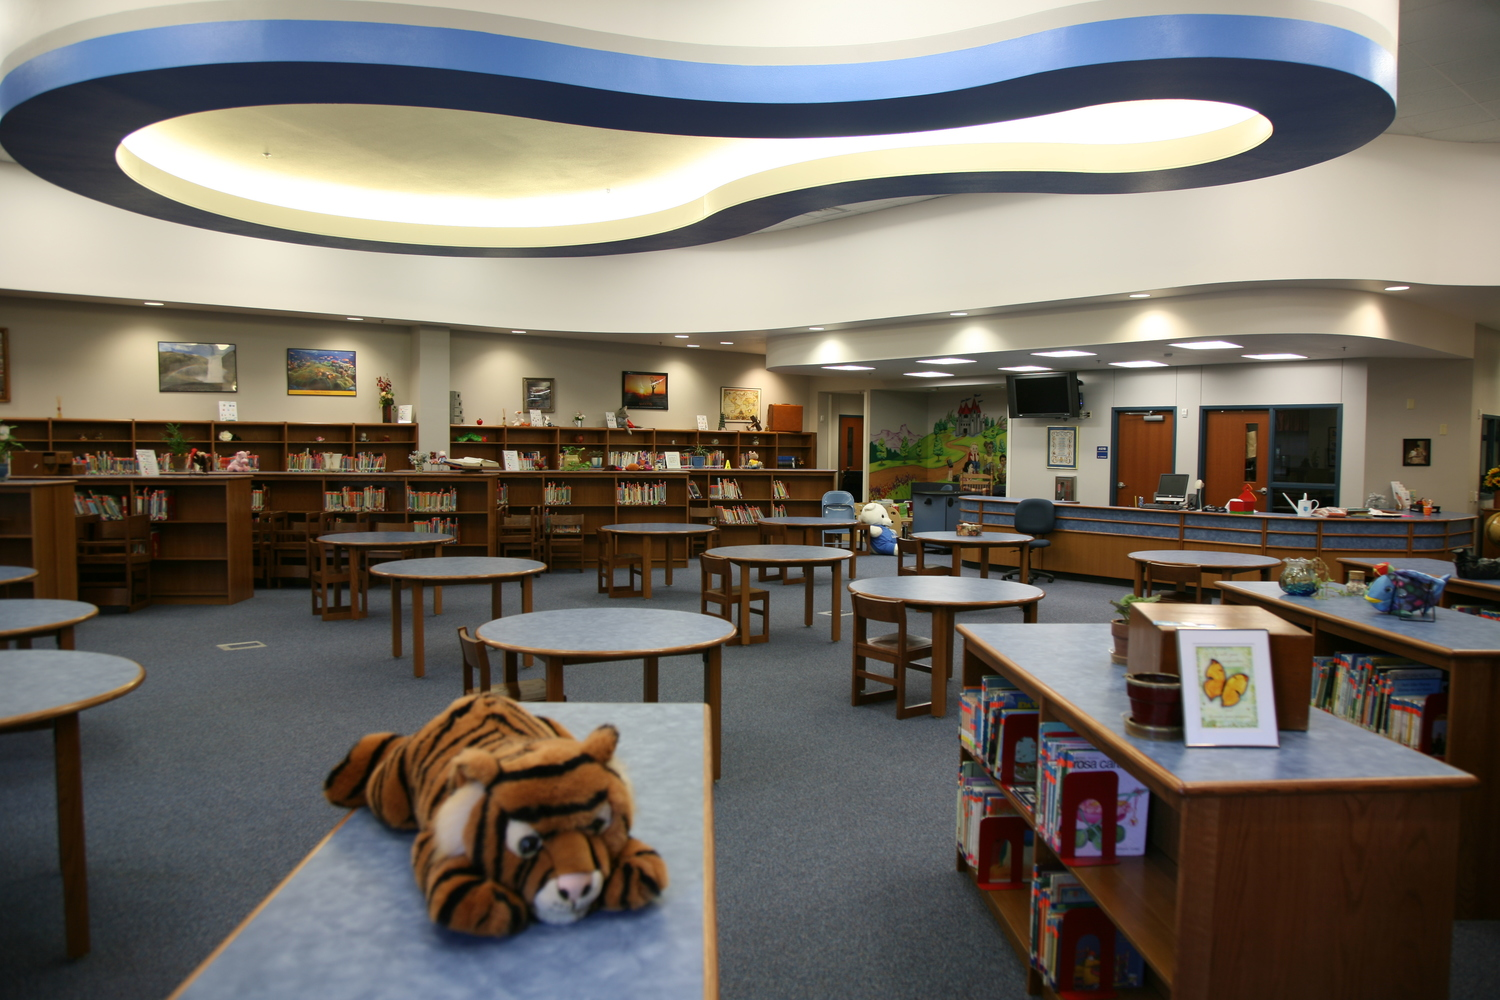 bonner elementary school - east texas school architecture - tyler educational facilities - butler architectural group